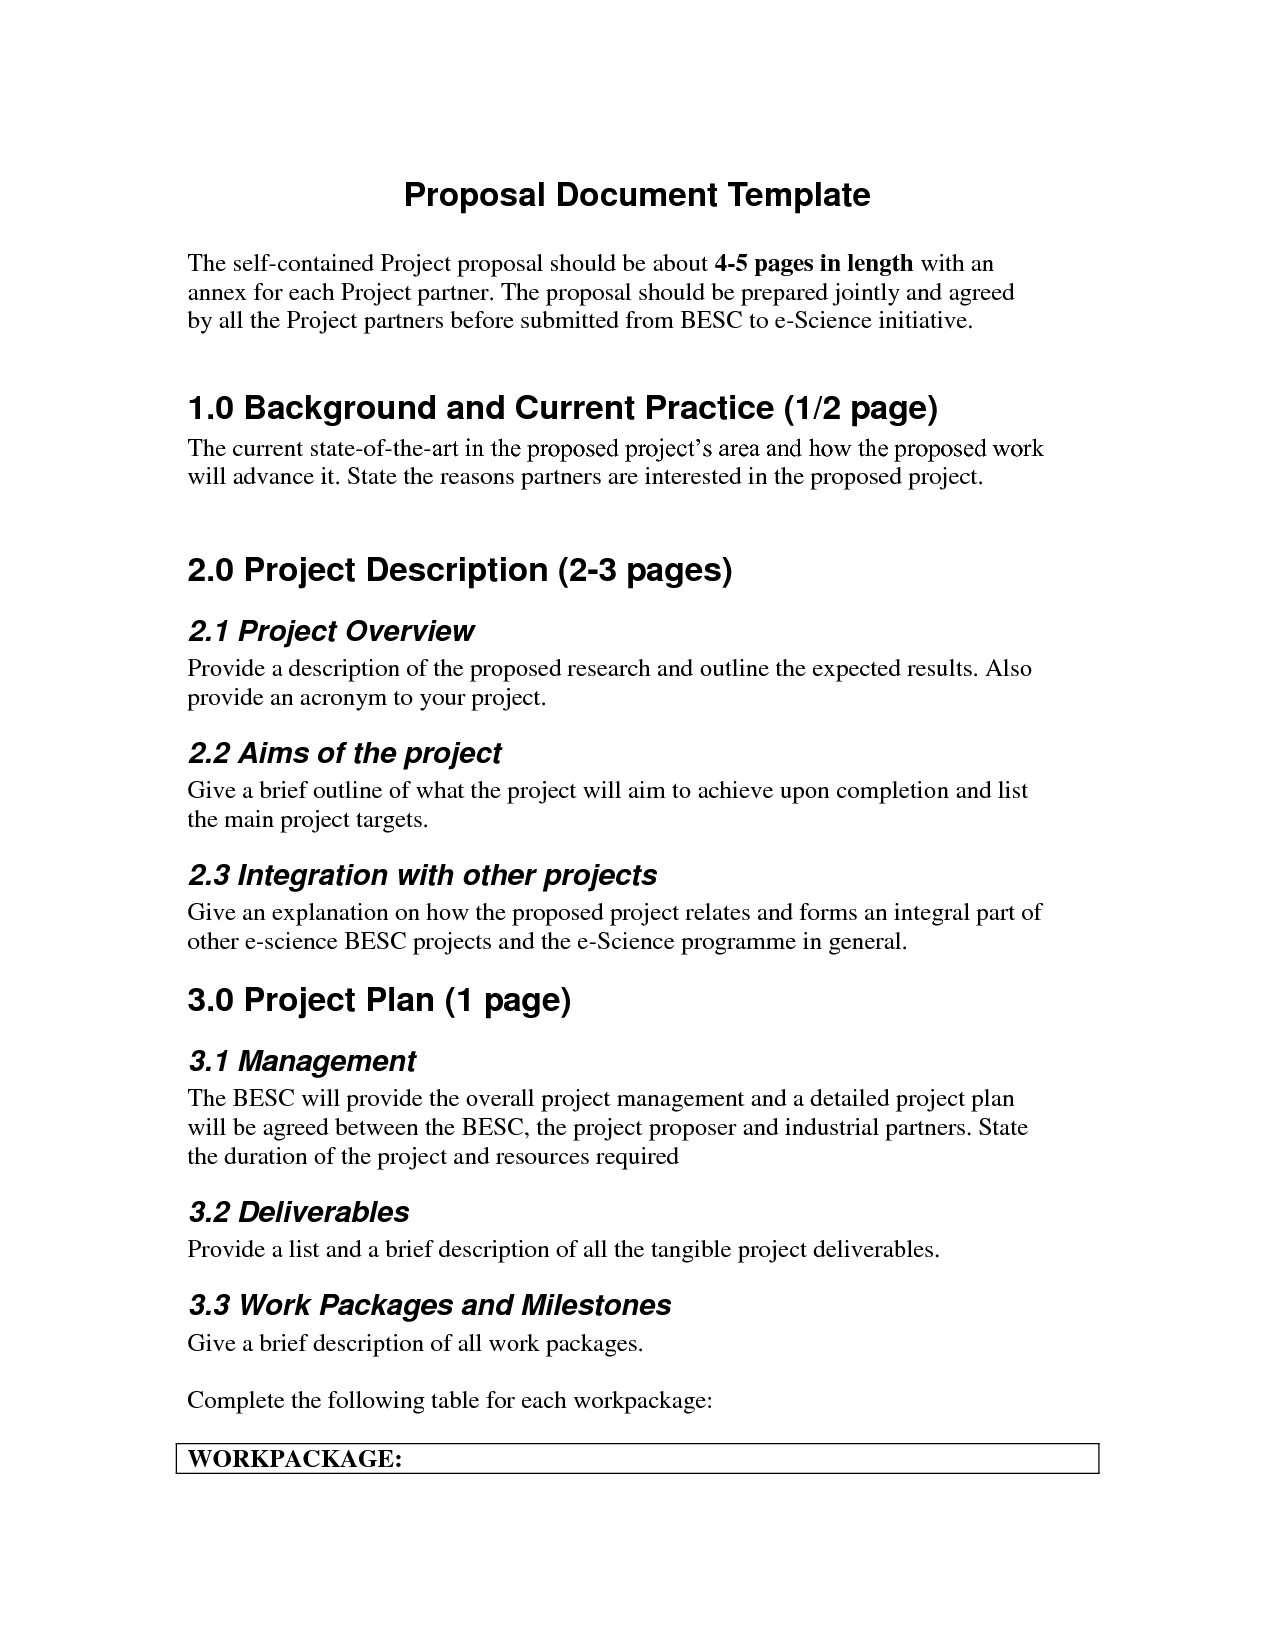 Descriptive Essay Help Essay Proposal Template Proposal Essay Topics Before Students Write A  College Research Paper Admissions Essay Examples Graduate Schools also Writing A Critical Essay Sample Essay Proposal Template Proposal Essay Topics Before Students  Essay In Chicago Style